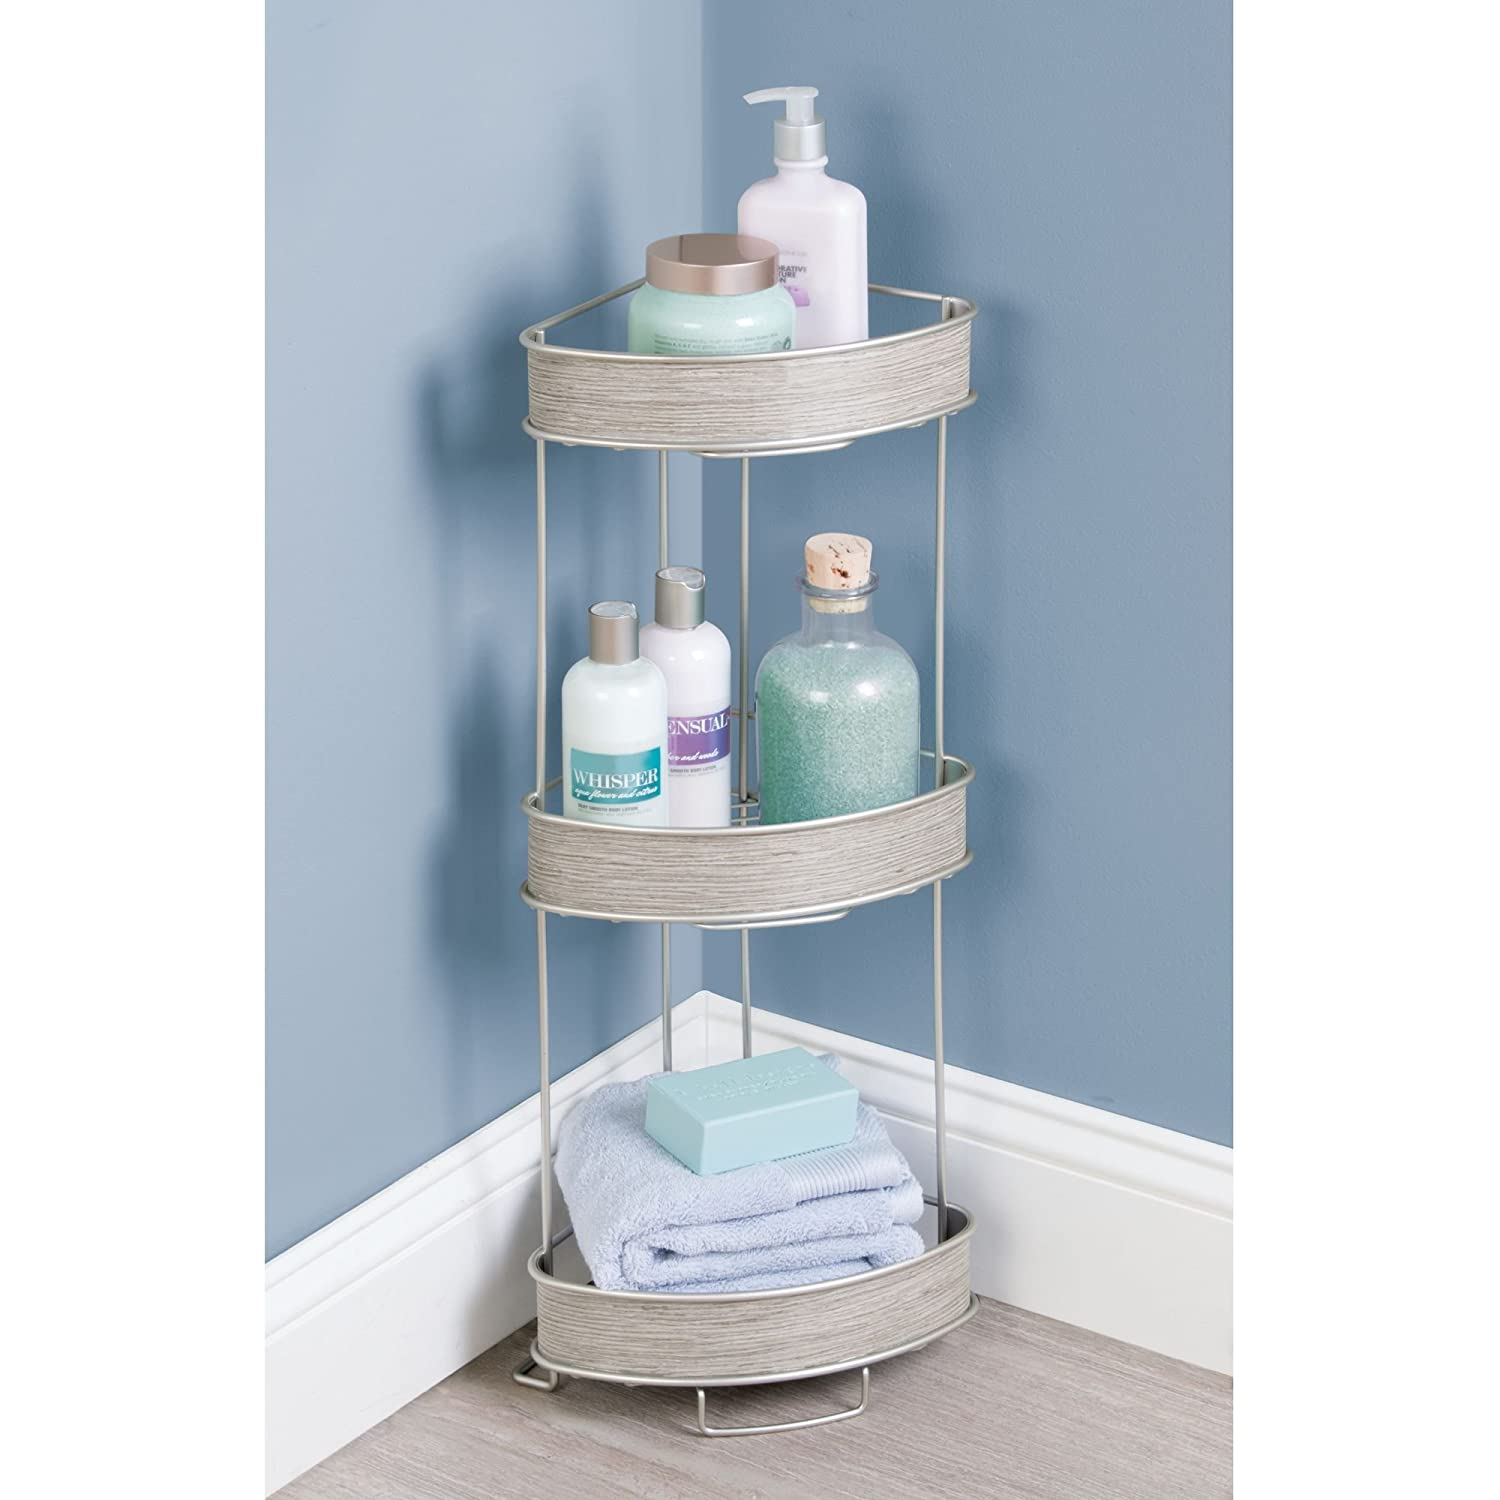 Amazon.com: mDesign Free Standing Corner Shelf with Three Tiers for ...